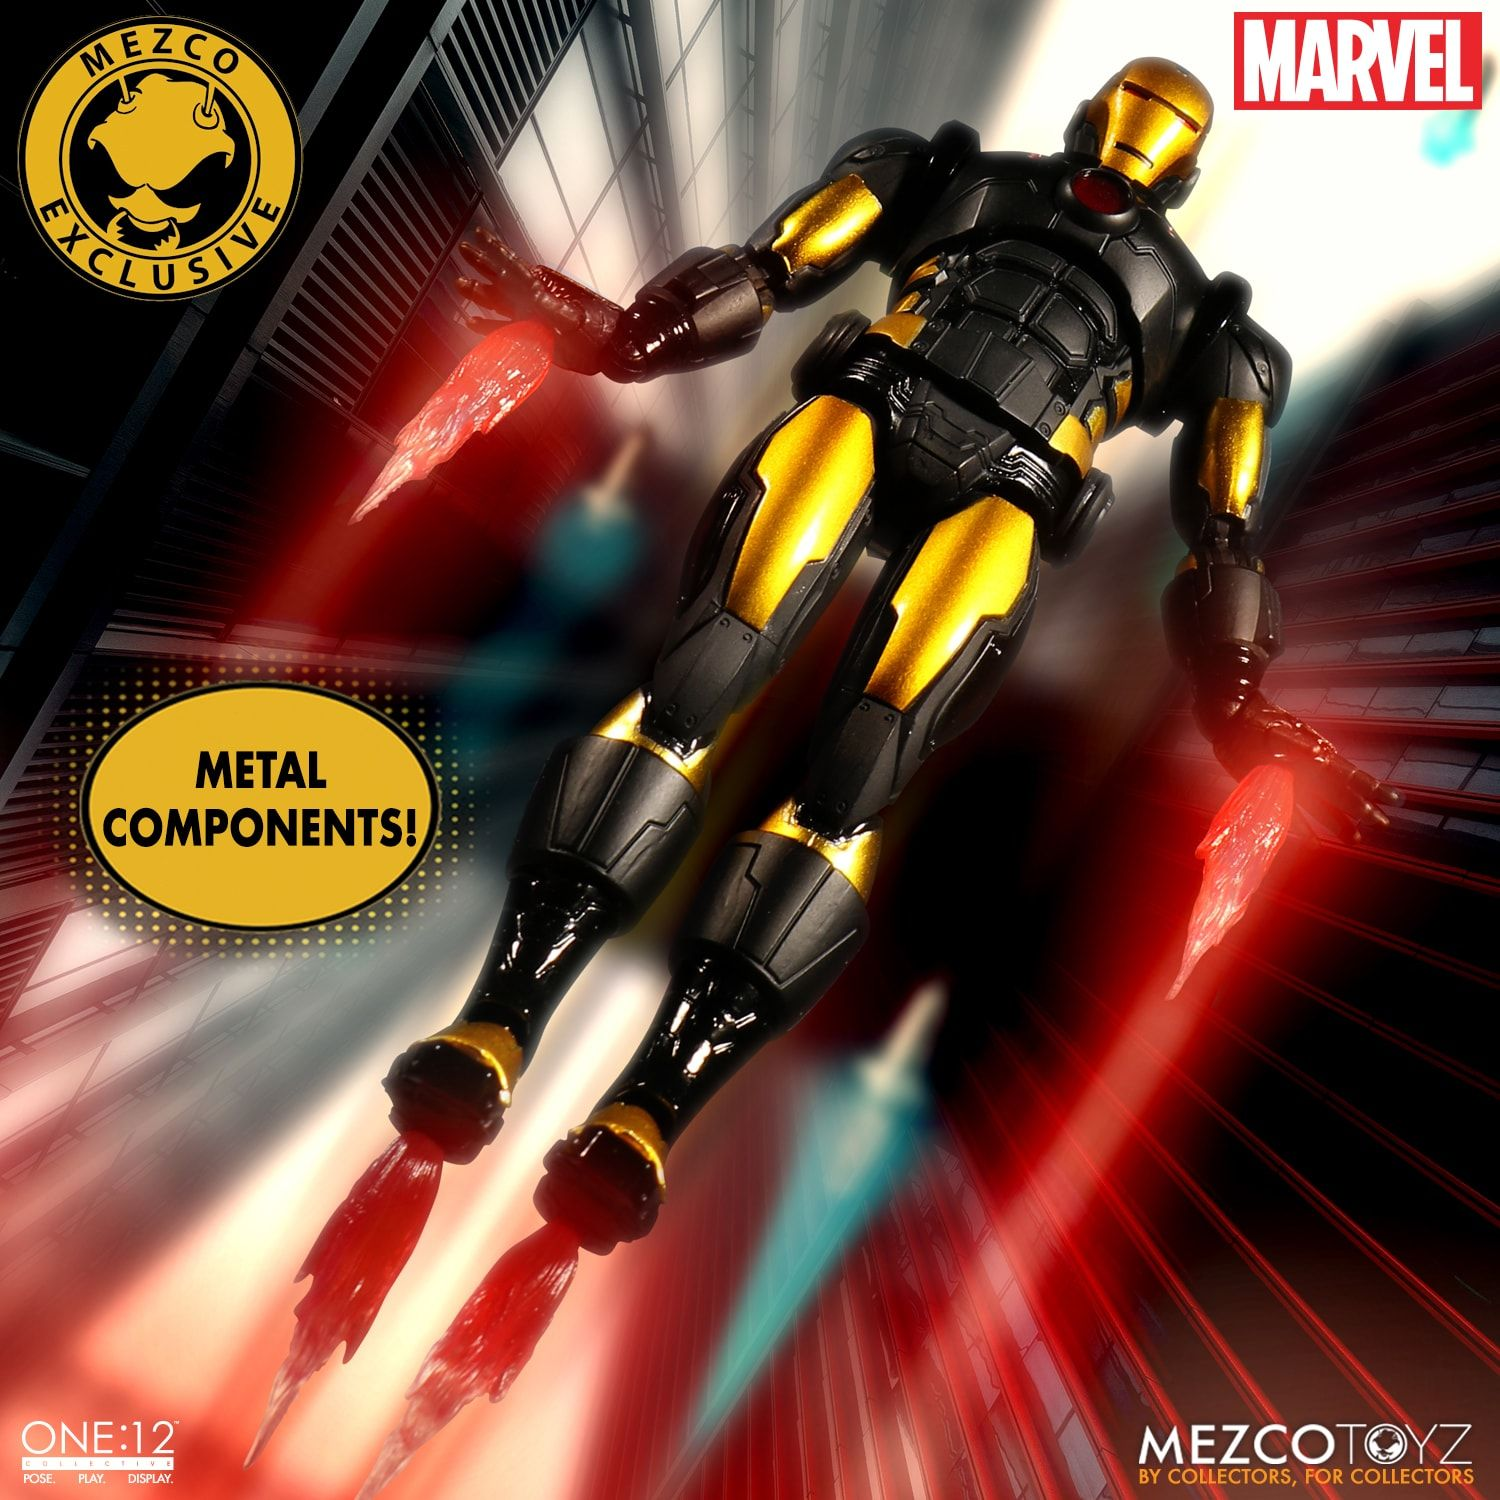 Iron Man Model 42 Armor Coming in November From One:12 Collective - Bleeding Coo...